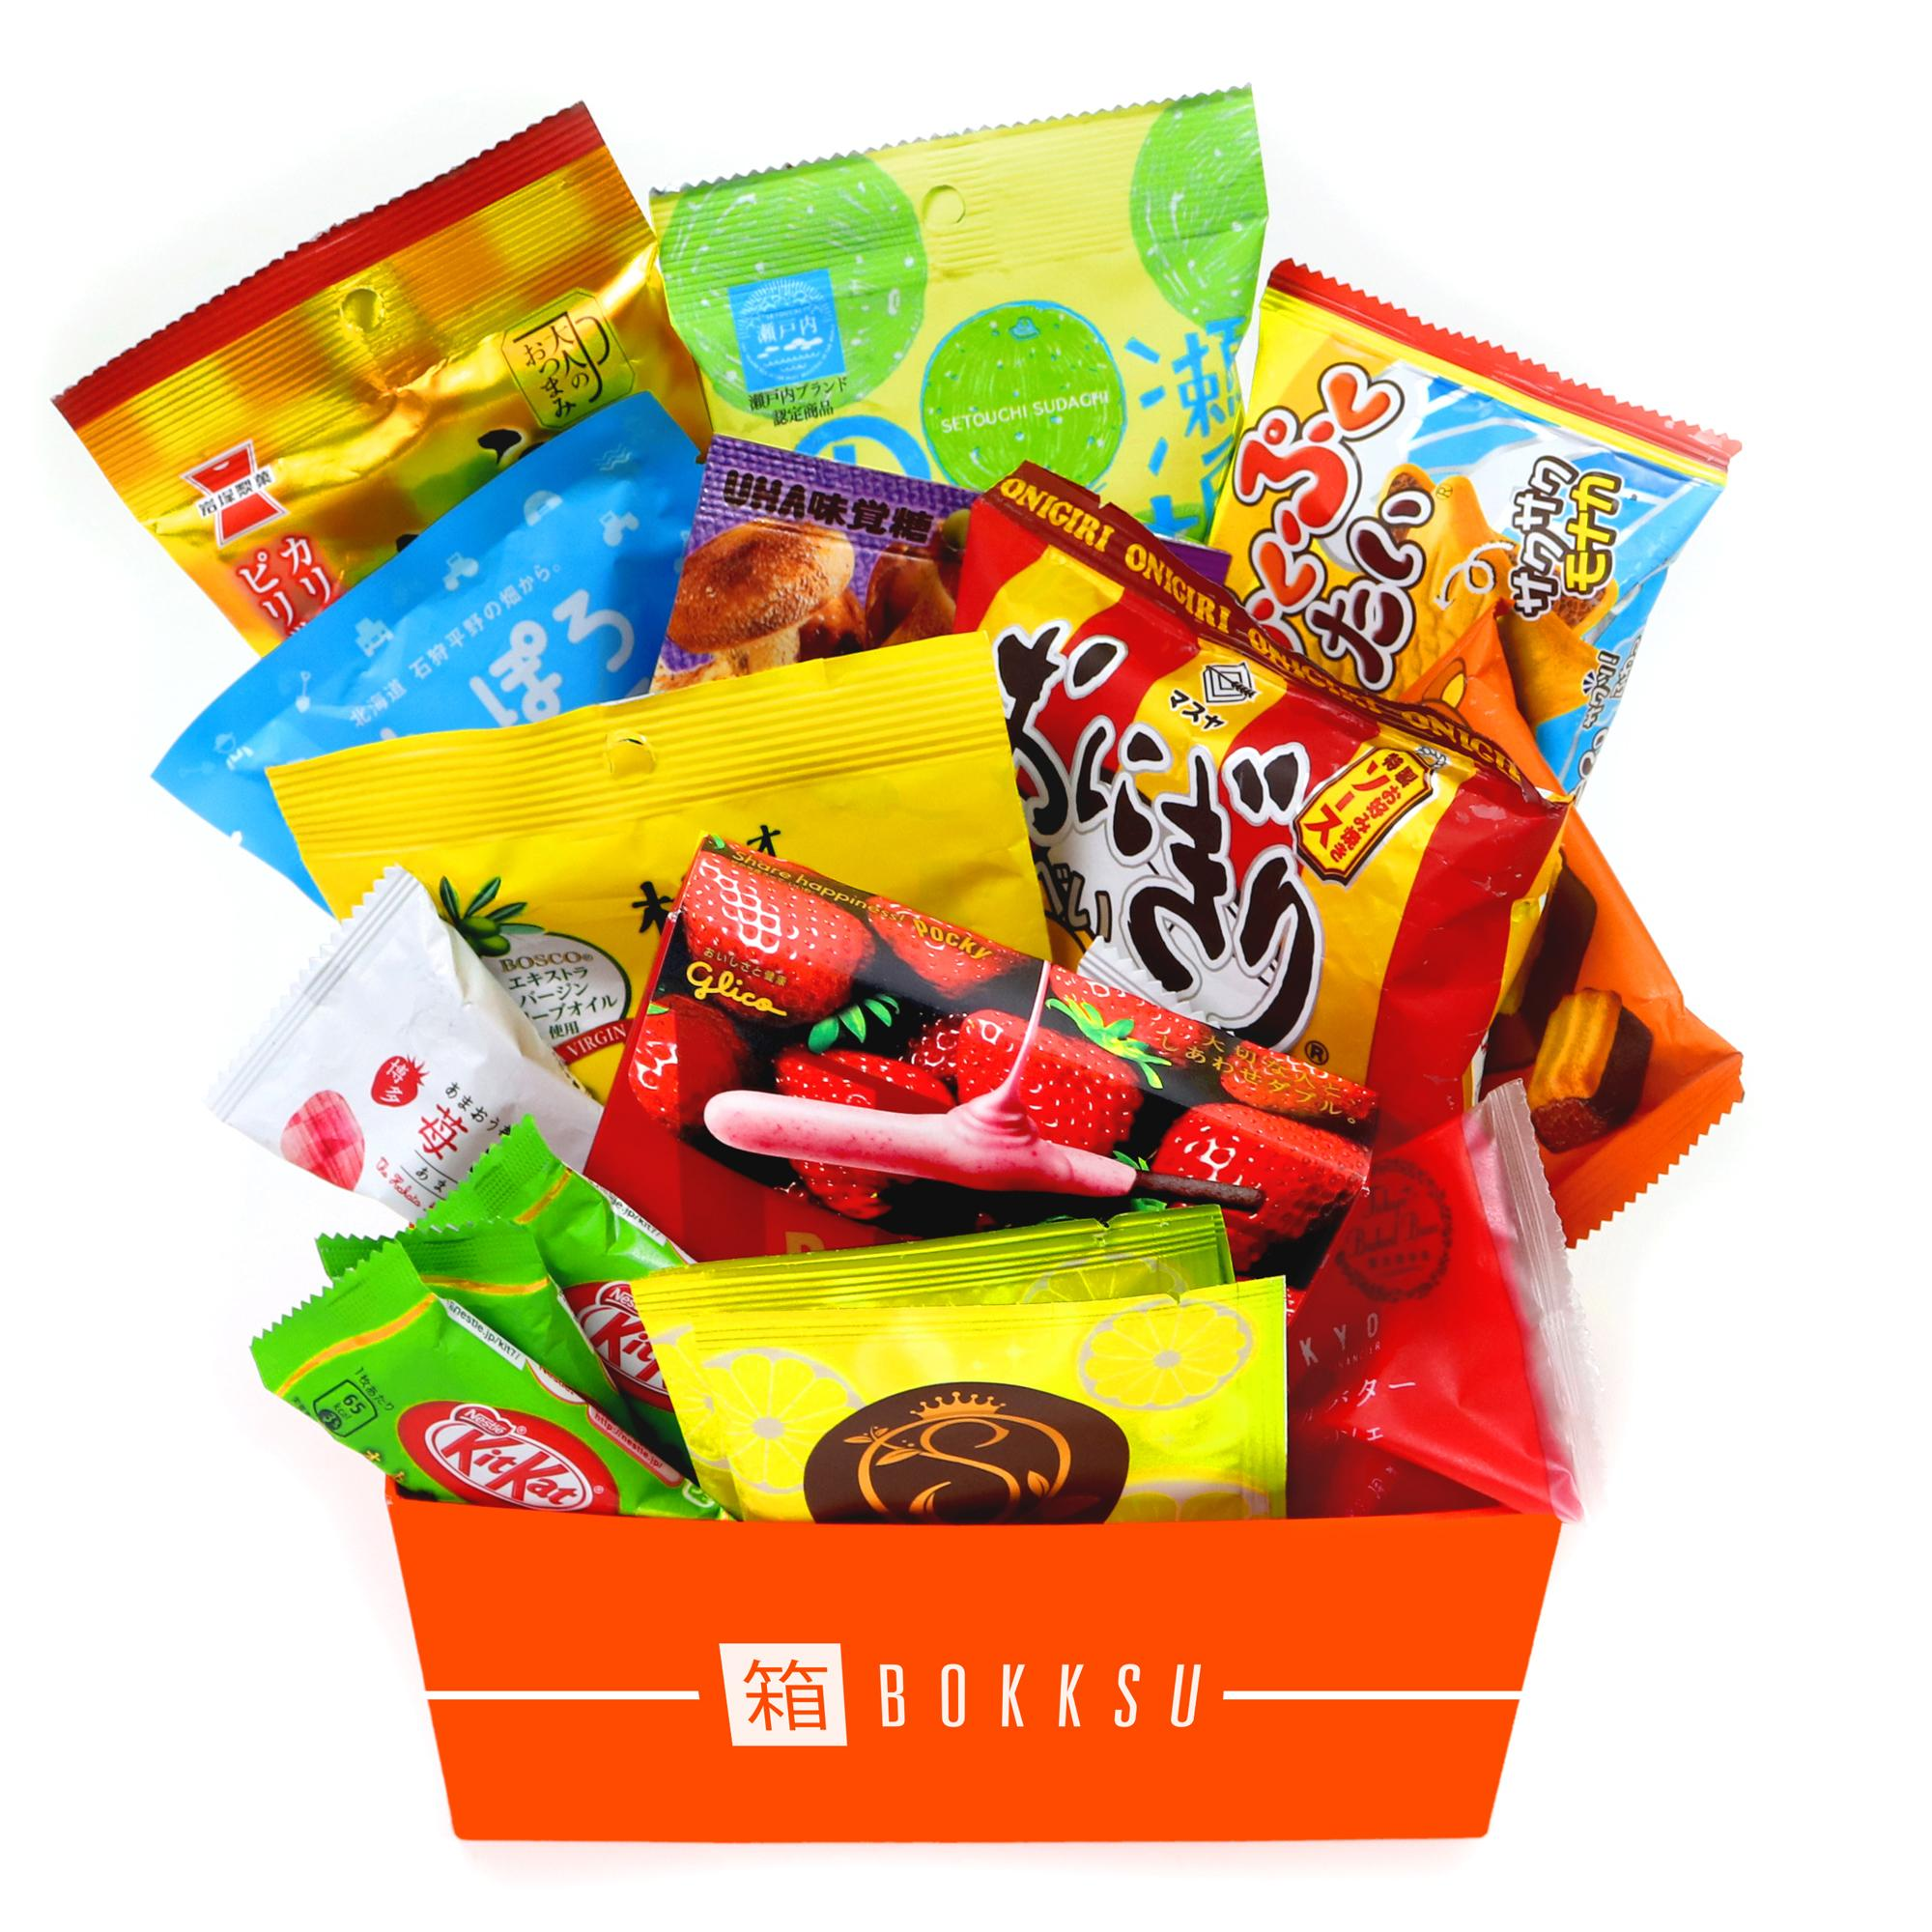 Bokksu - Authentic Japanese Snack & Candy Subscription: Classic Box $21